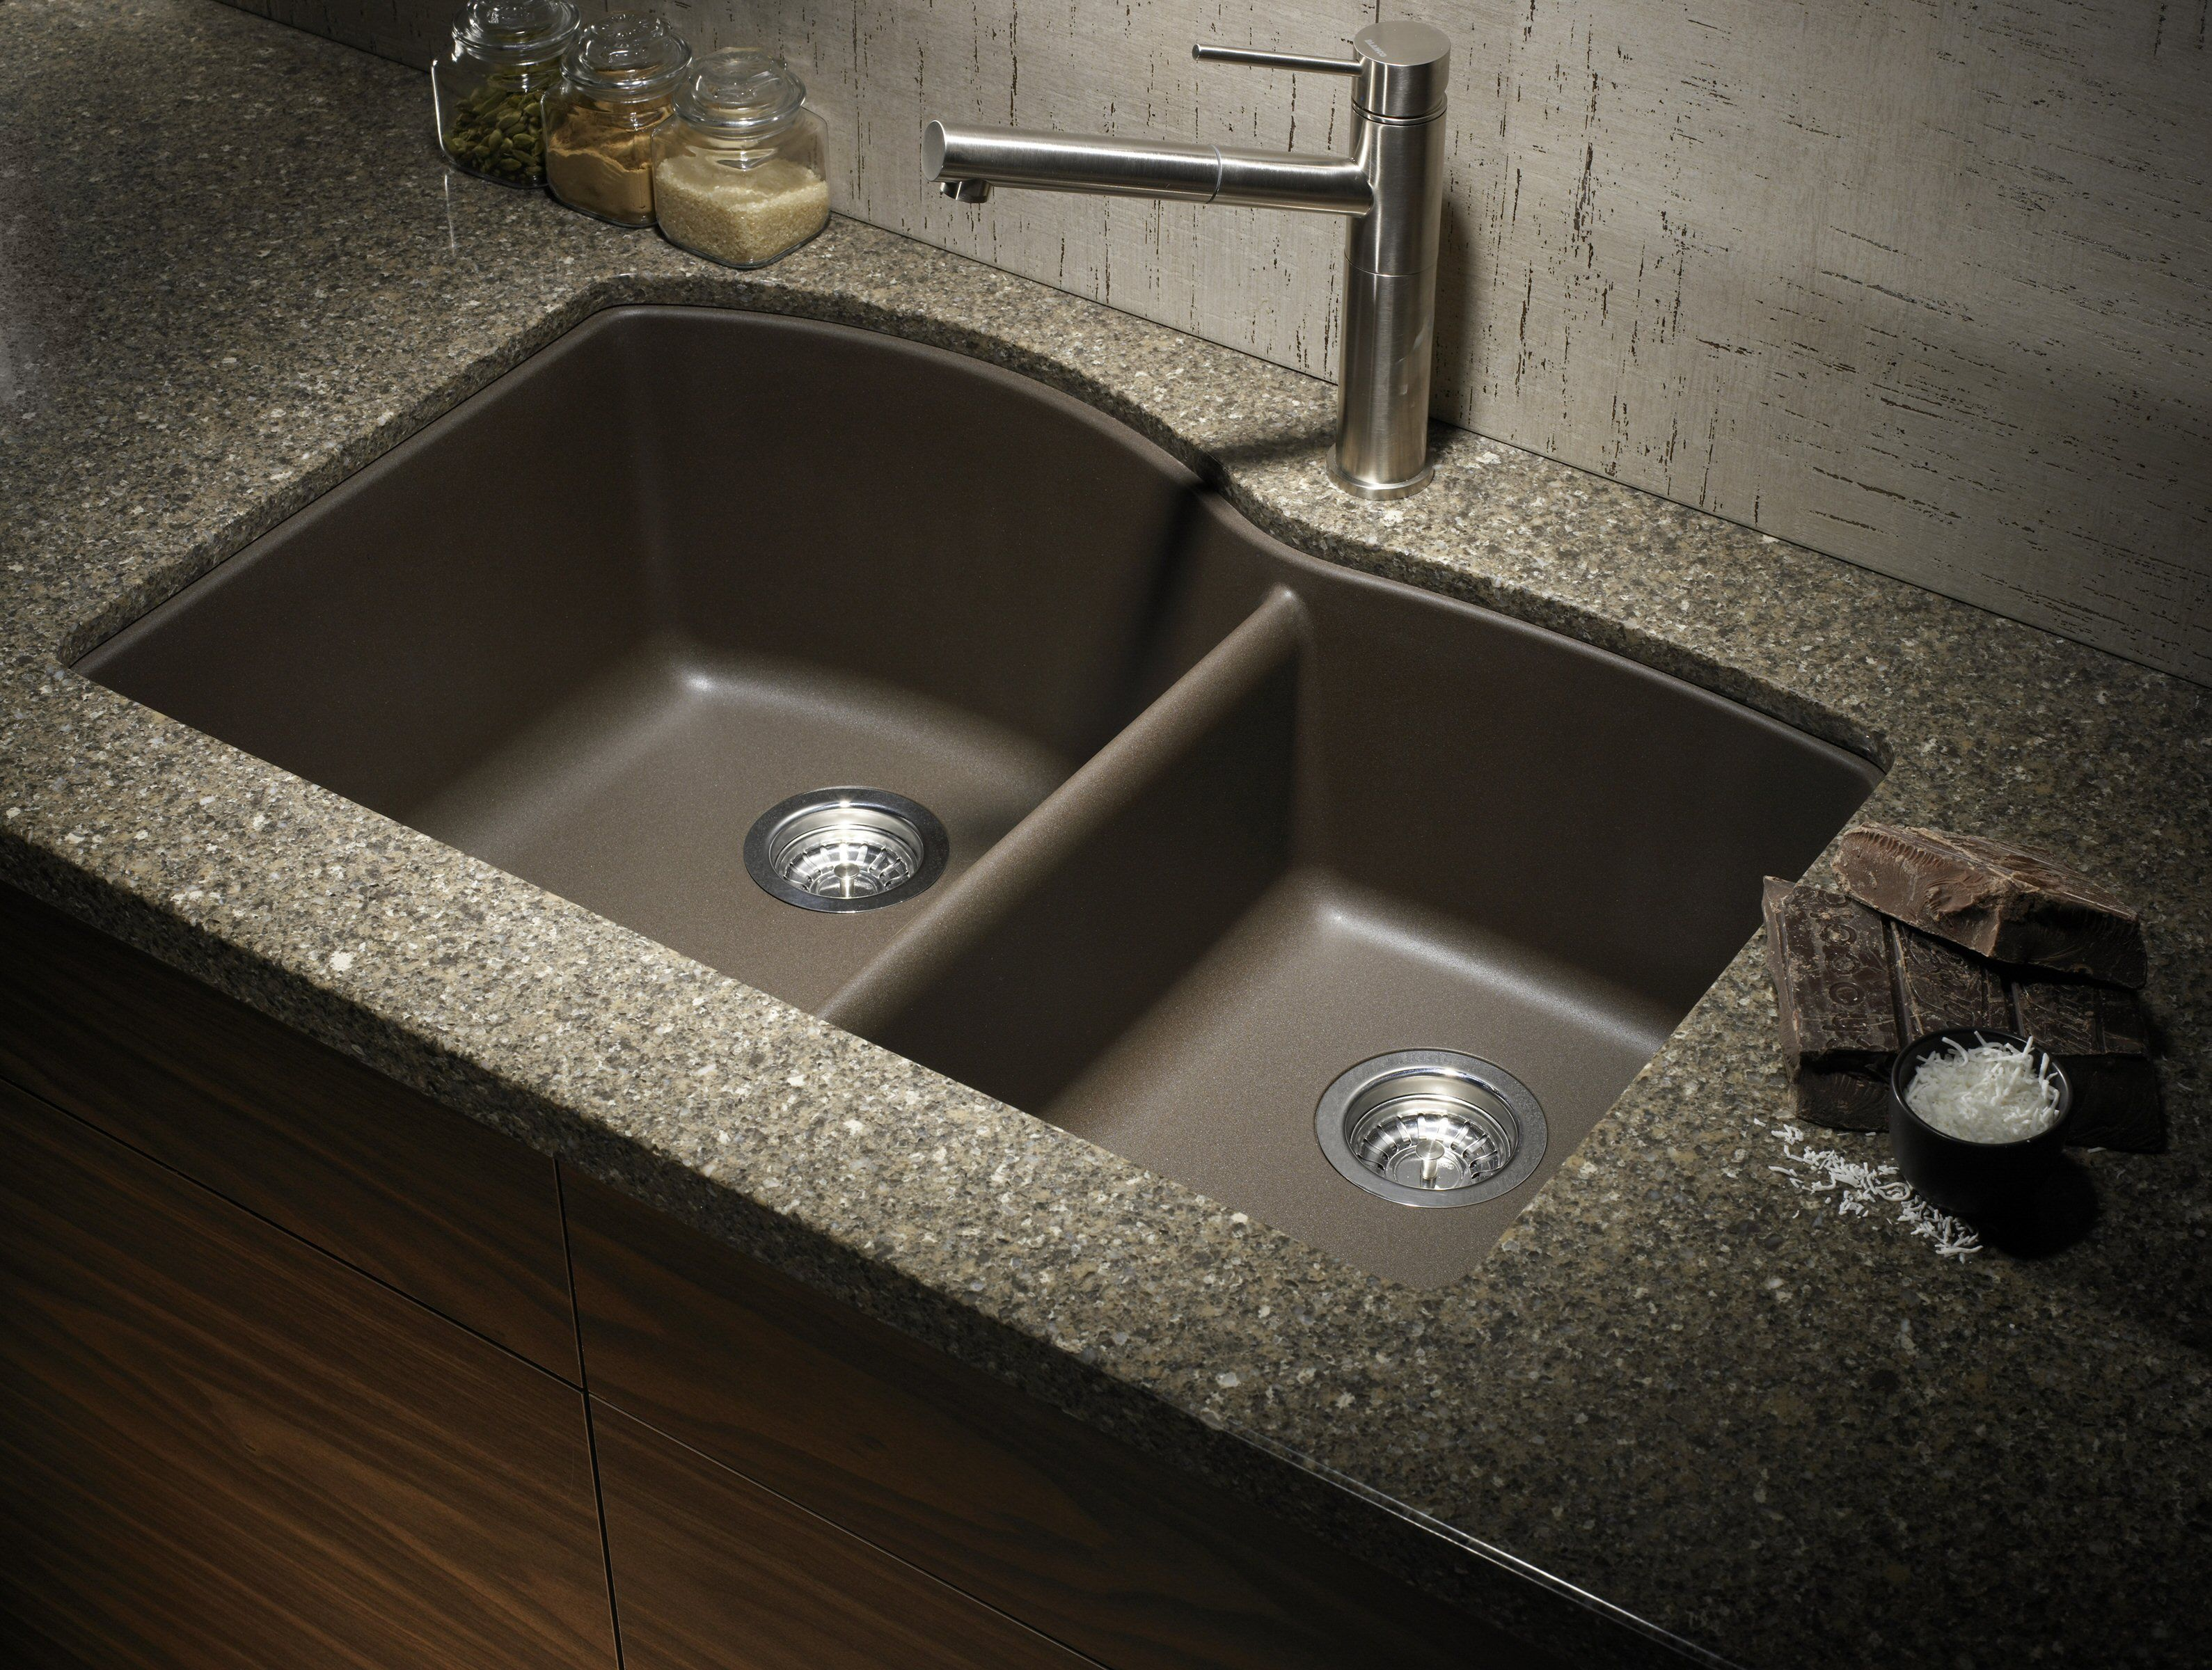 How to Clean a Granite Composite Sink | Composite kitchen ...